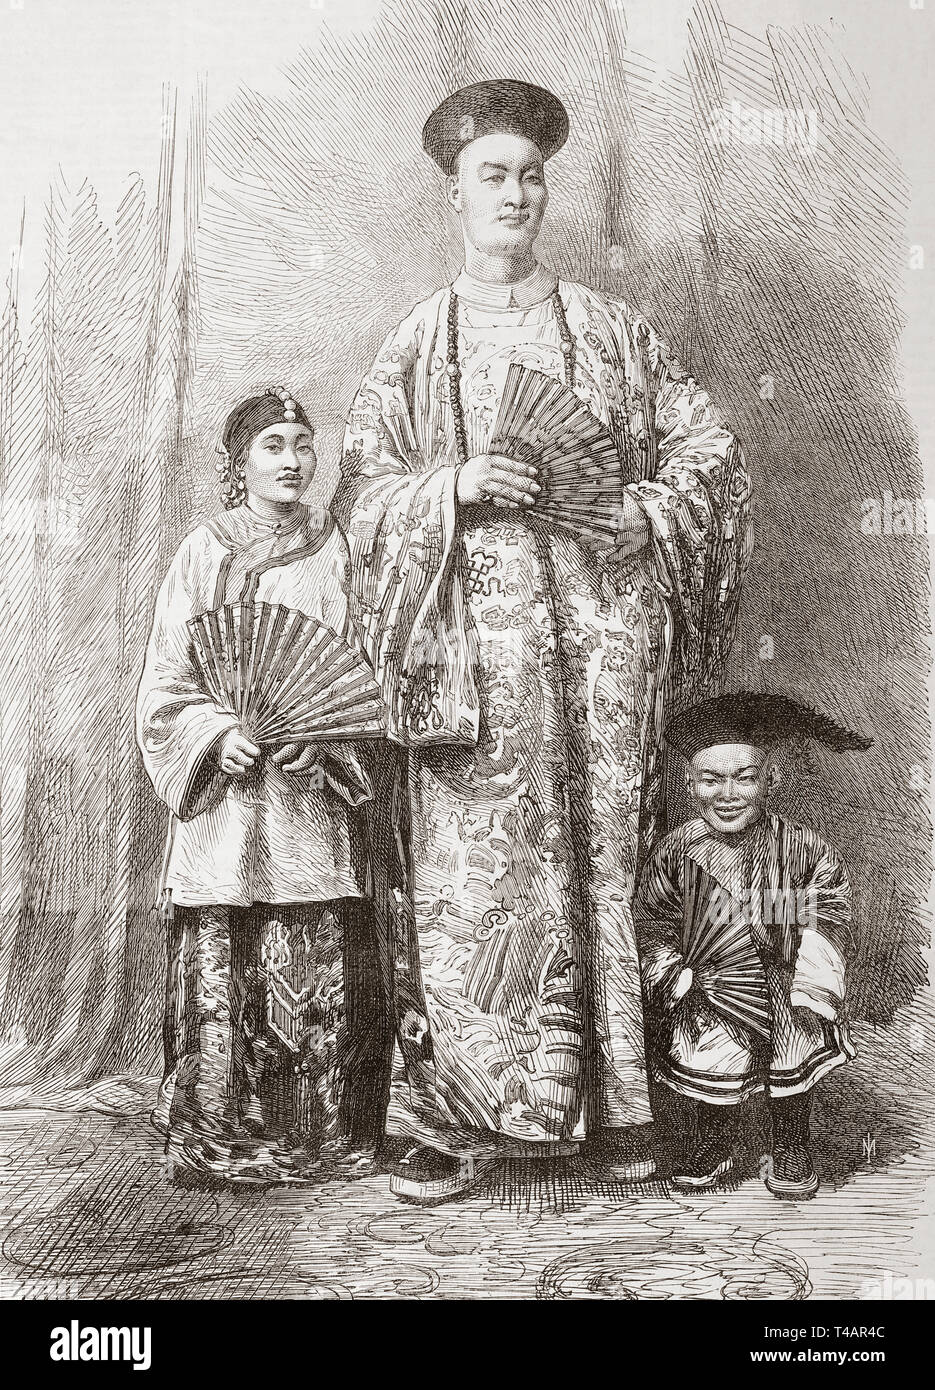 """Zhan Shichai, 1841 – 1893.  A Chinese giant who toured the world as """"Chang the Chinese Giant"""" in the 19th century, his stage name was """"Chang Woo Gow"""".   Seen here in 1865 with his wife, Kin Foo and his attendant dwarf, Chung.  Chang's height was reputed to be over 8 feet (2.44 m).  From The Illustrated London News, published 1865. Stock Photo"""